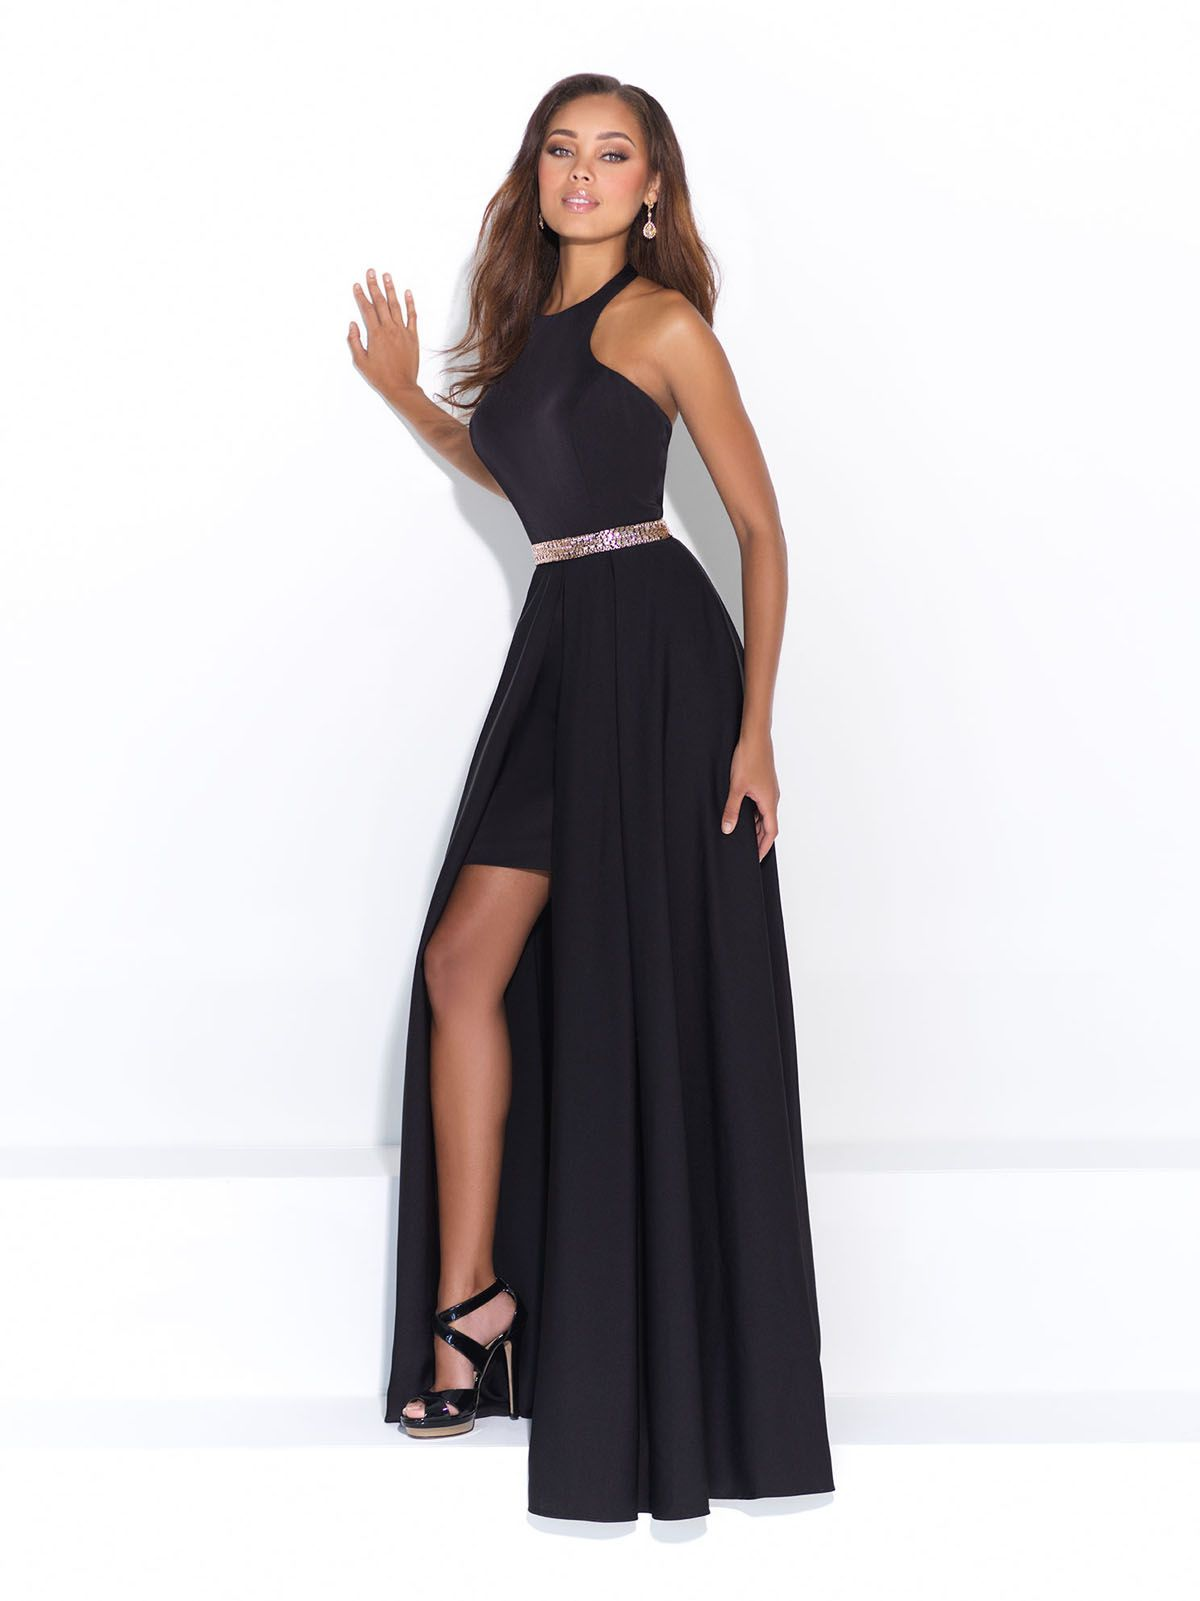 Madison james madison james prom dresses pinterest prom